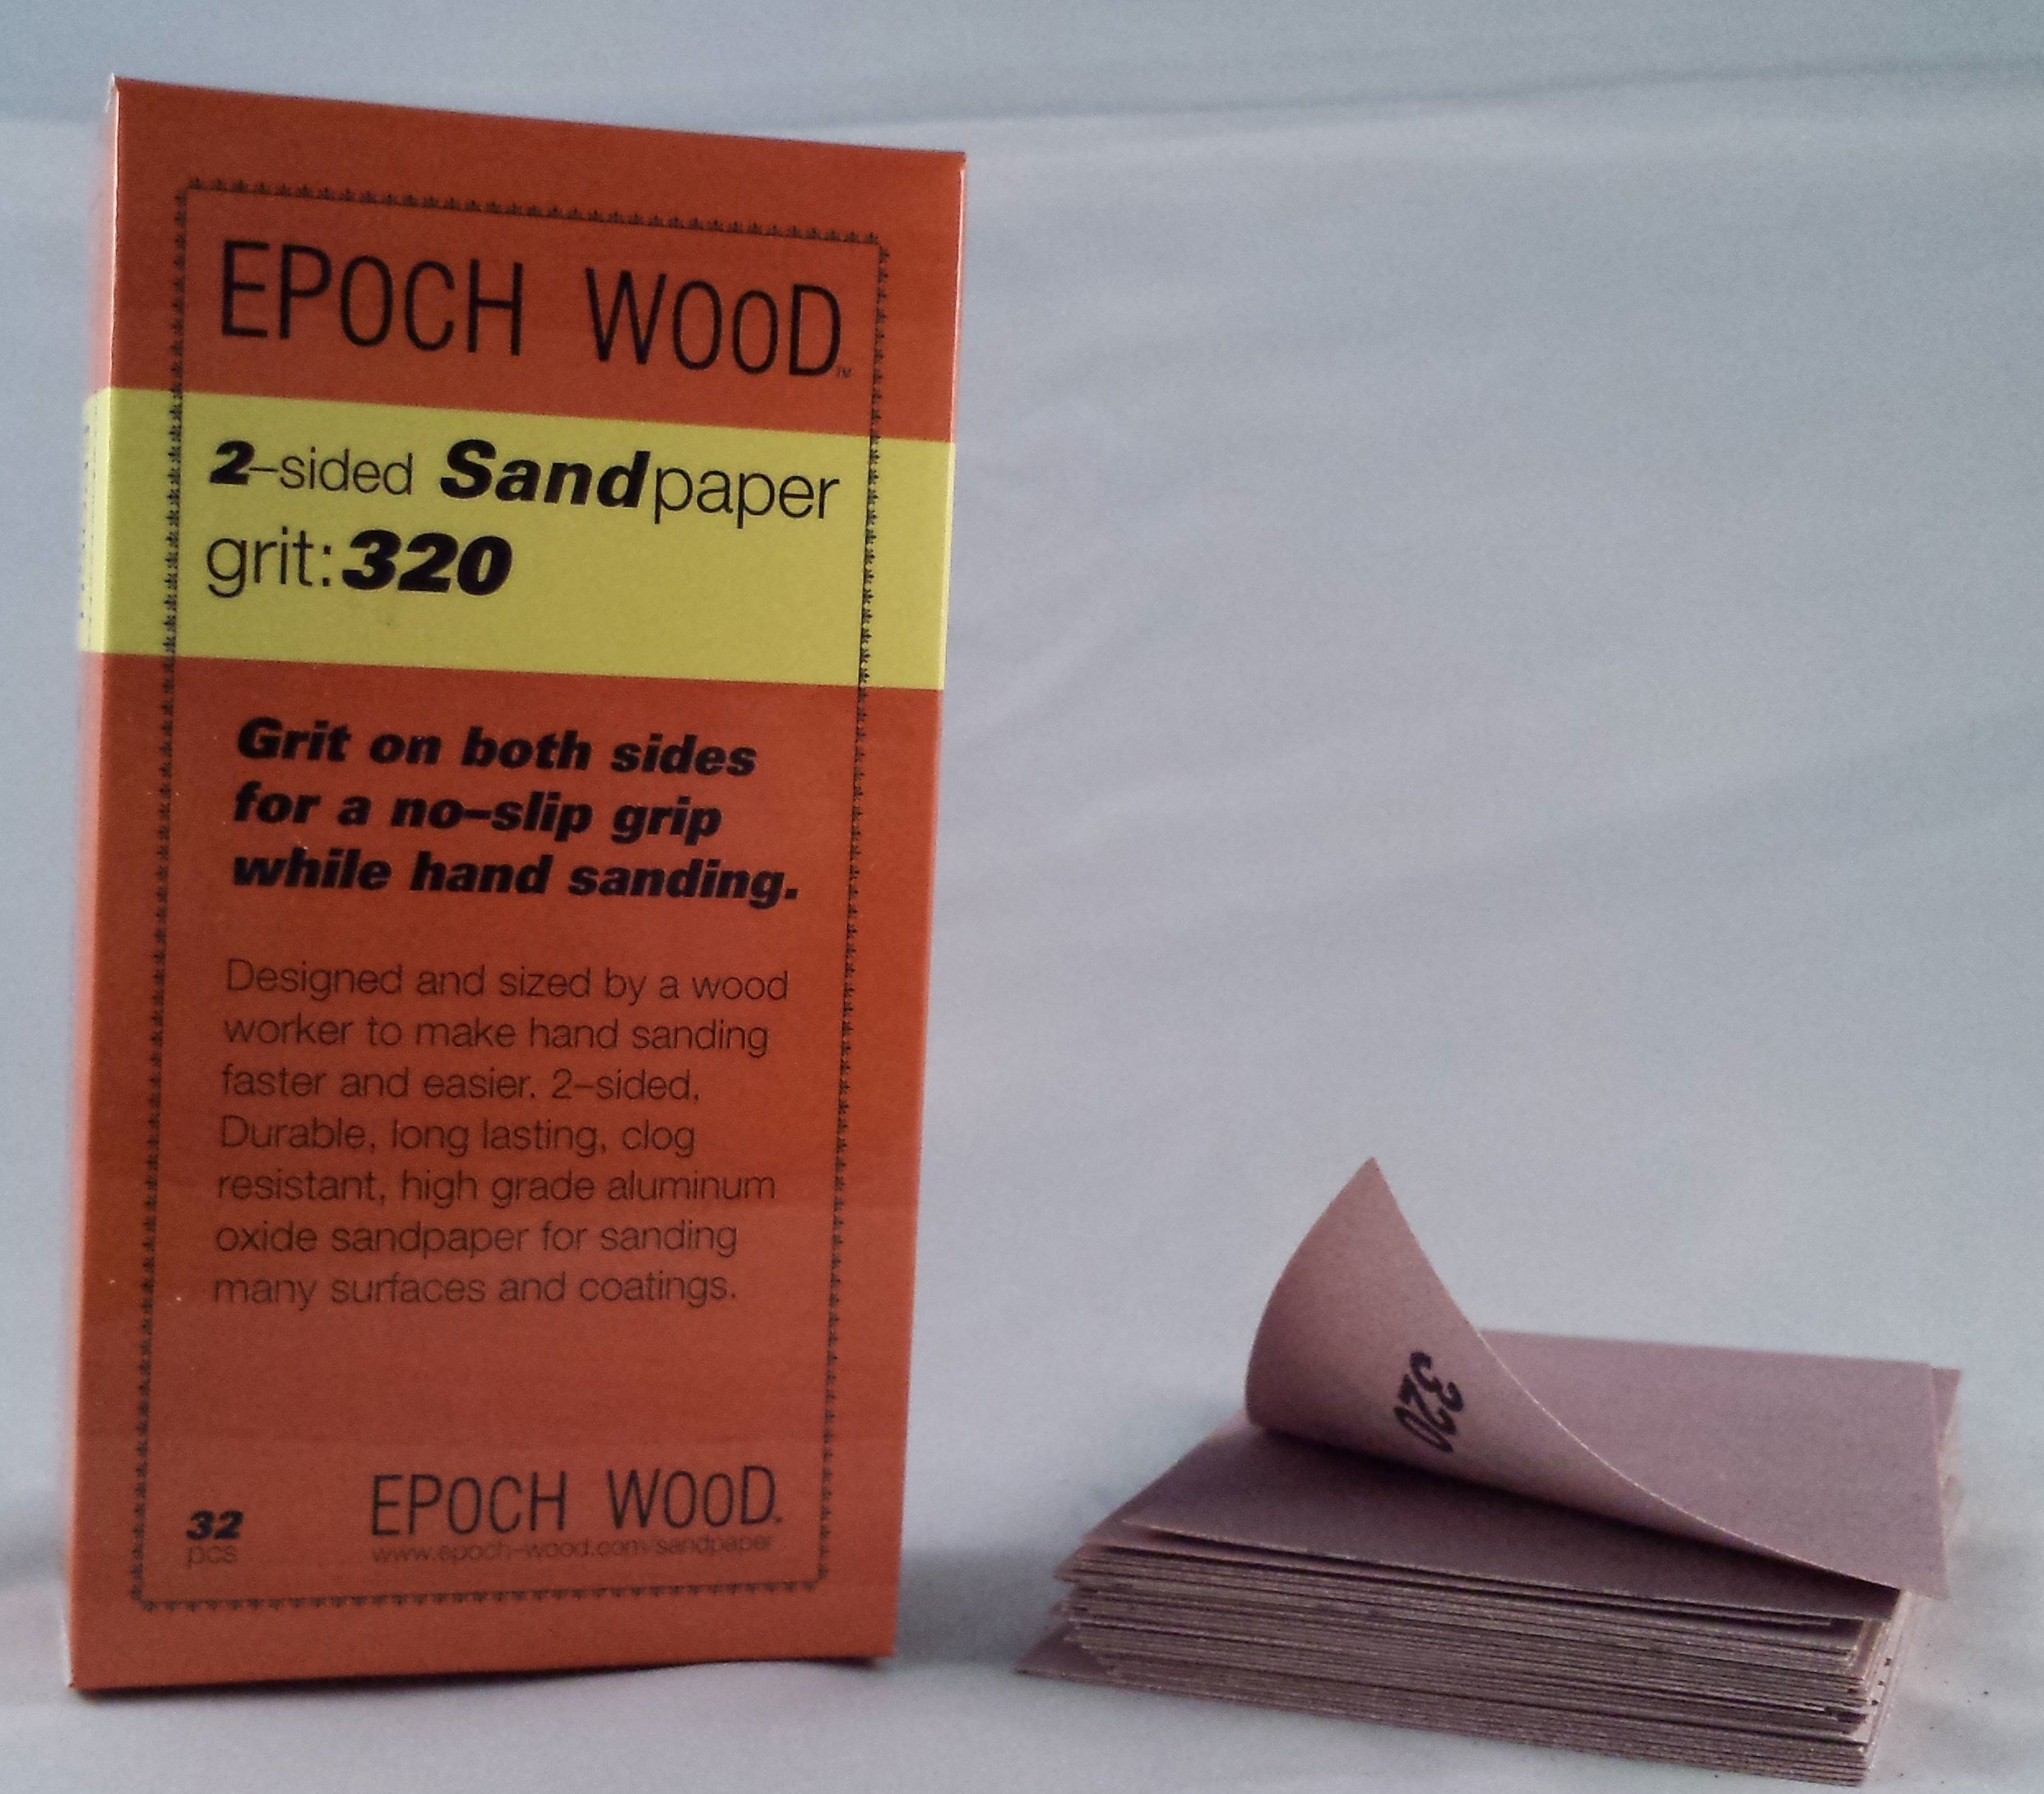 320 grit, 2-sided sandpaper, 32 pcs.